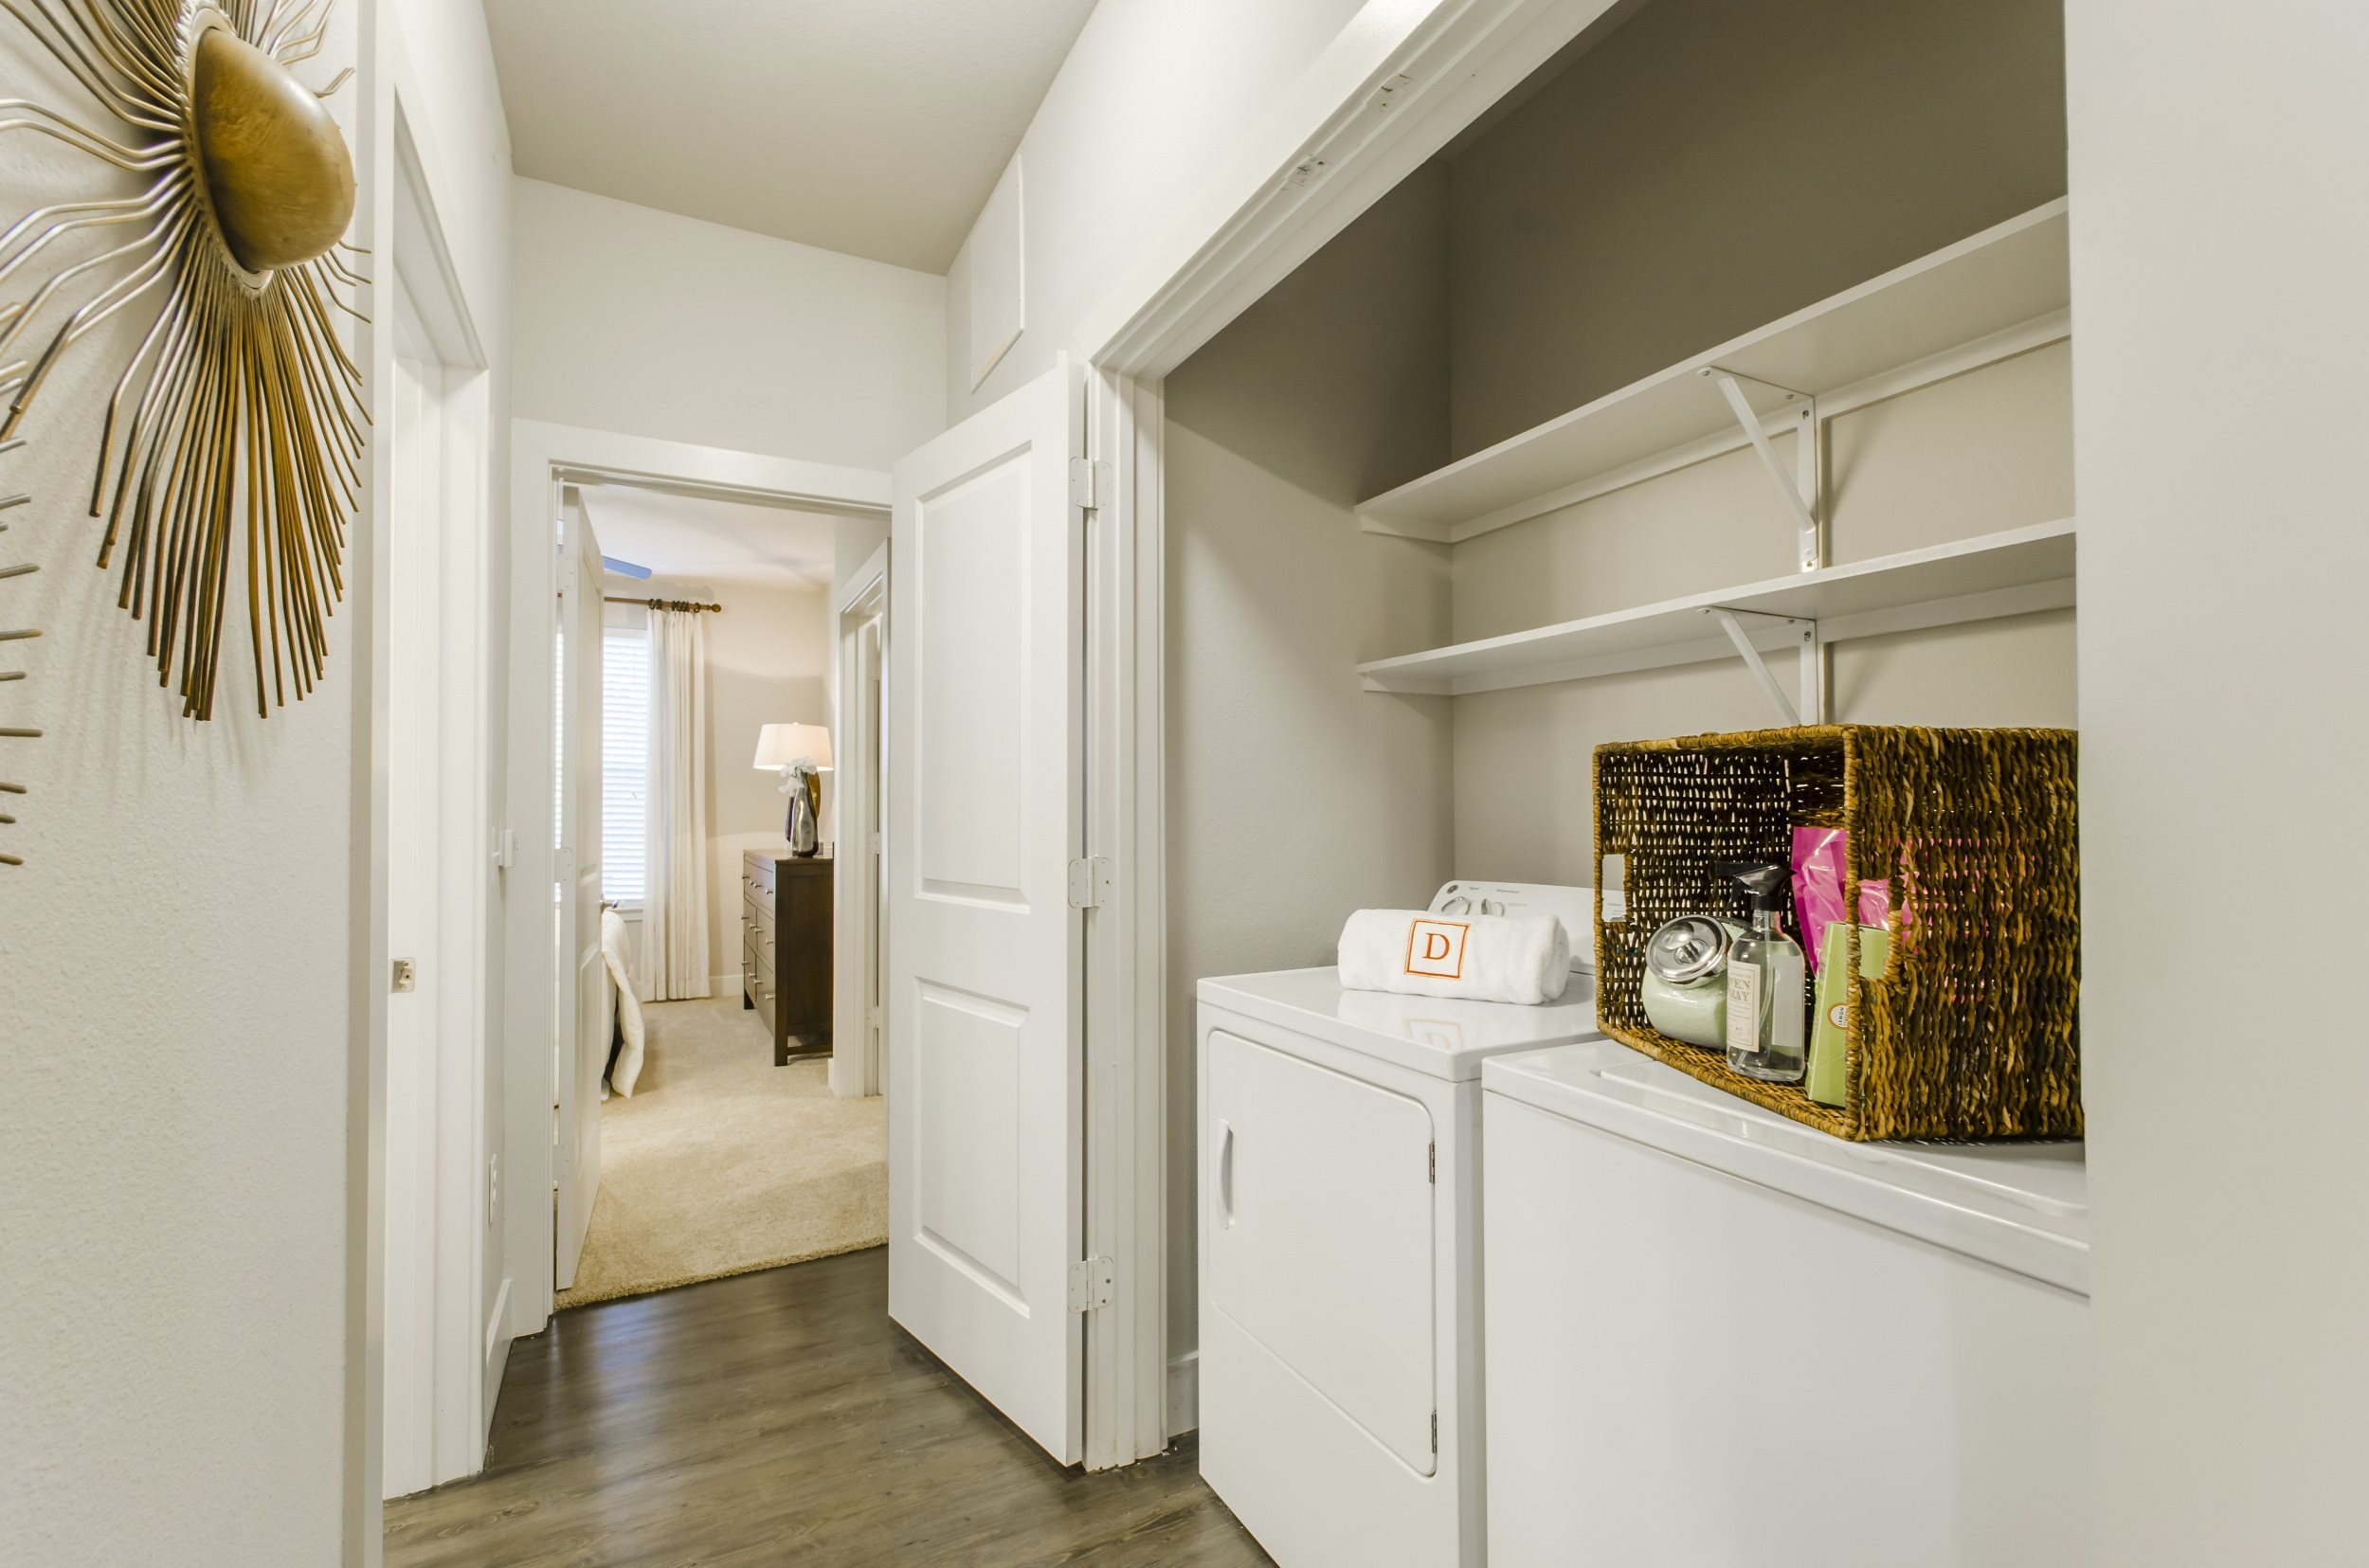 Spacious Laundry Rooms